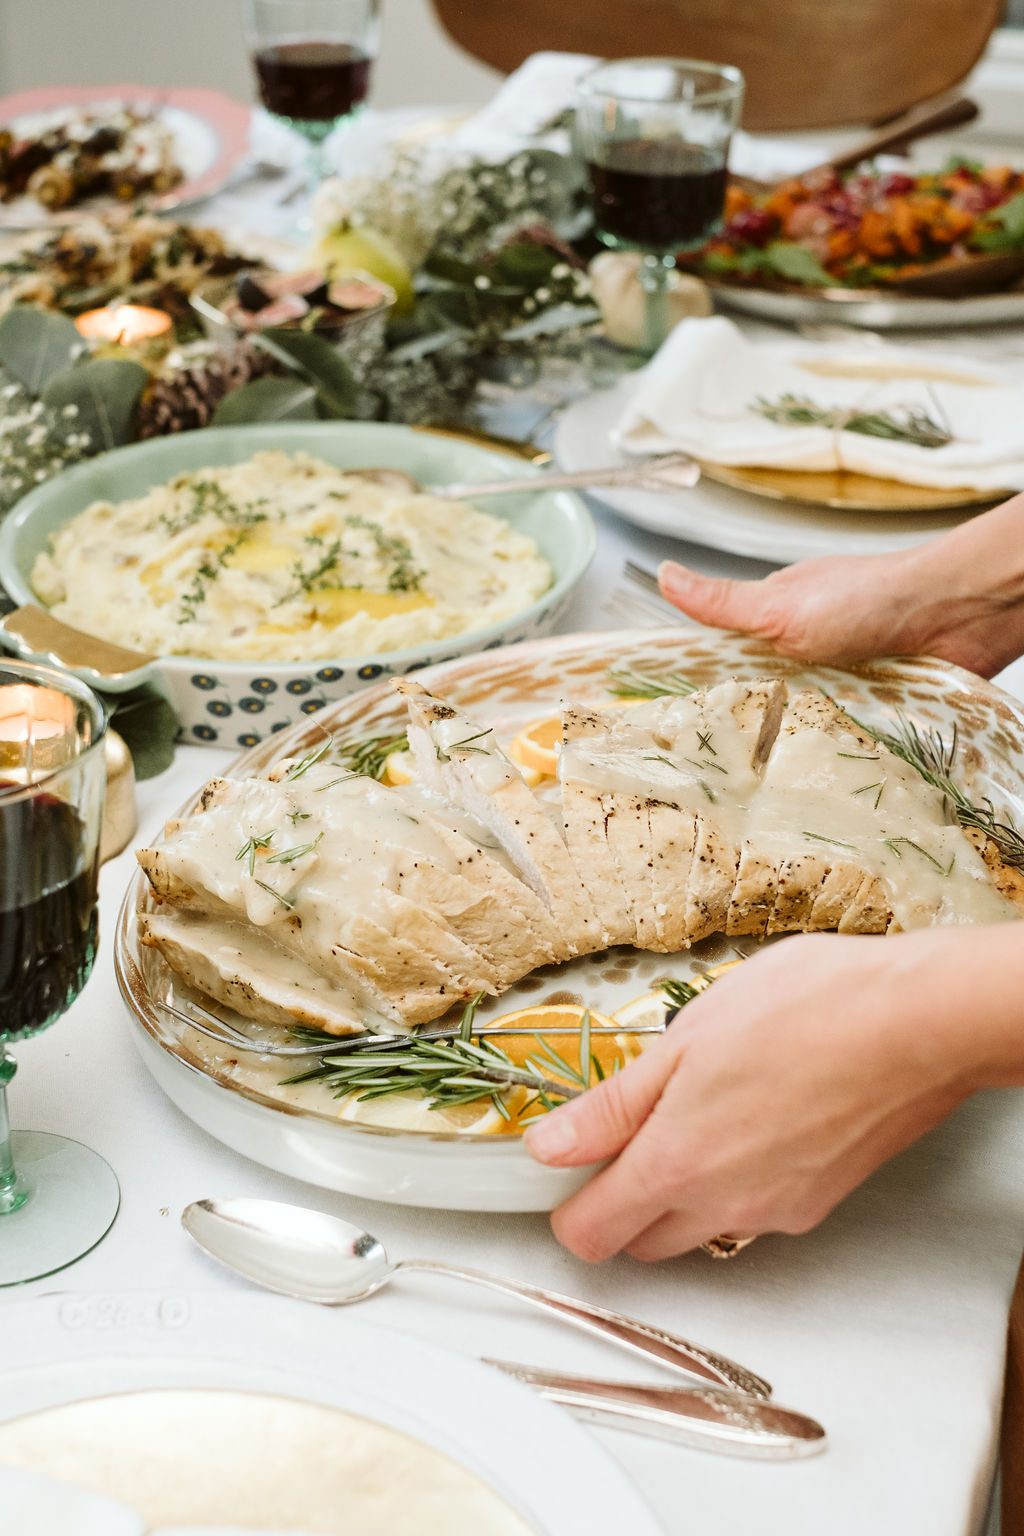 All of the recipes you need for an epic, delicious Thanksgiving! These healthy Thanksgiving recipes are unique twists on the traditional ones that you know and love. From appetizers and mains to amazing side dishes and desserts, these recipes will be your new favorites to share with family & friends.